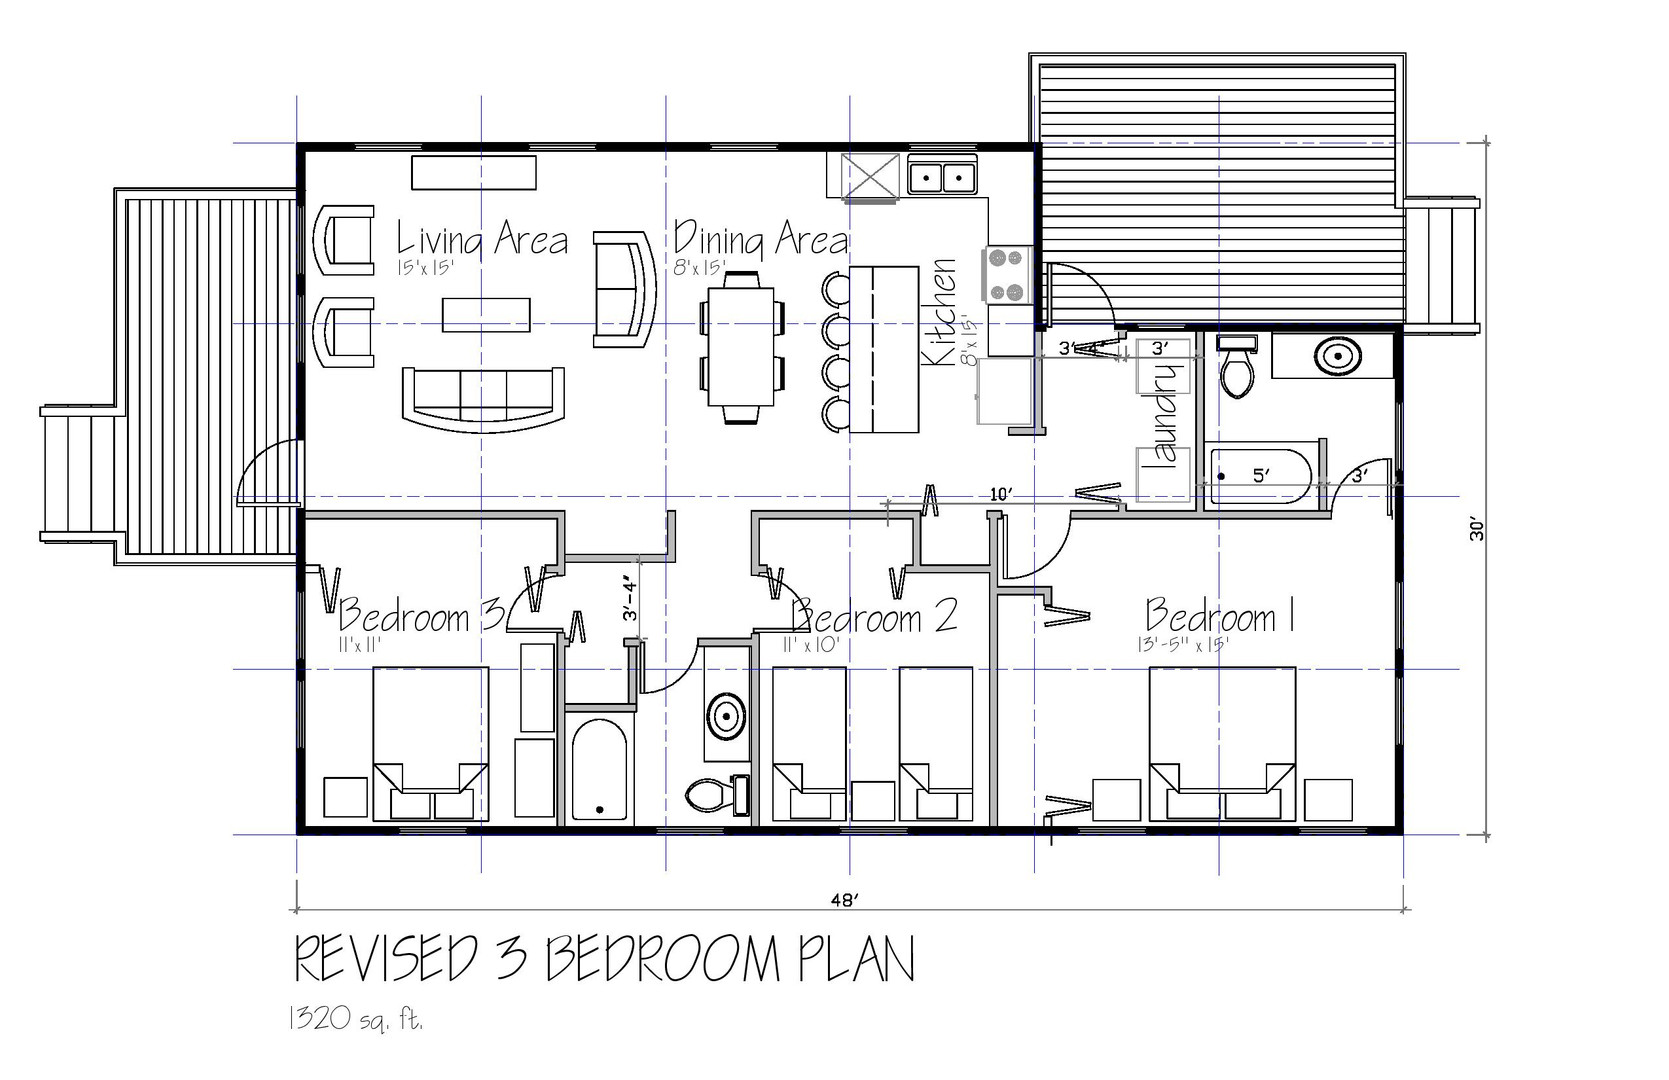 RESTORATION Revised 3 Bedroom Plan-page-